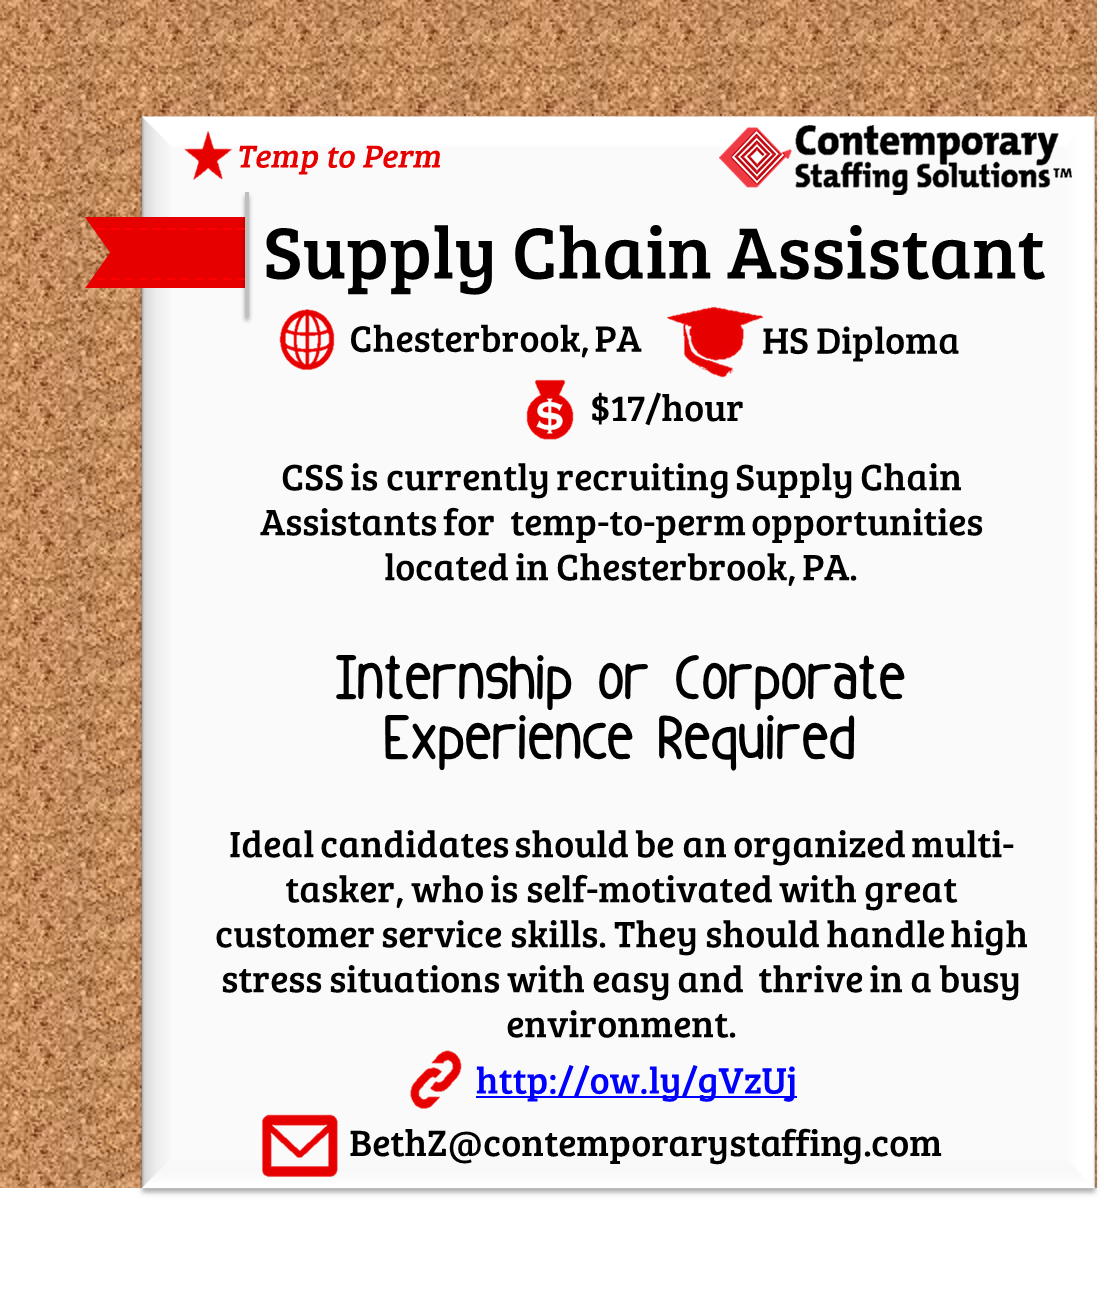 CSS is #hiring Supply Chain Assistants in Chesterbrook, PA l $17/hr ...